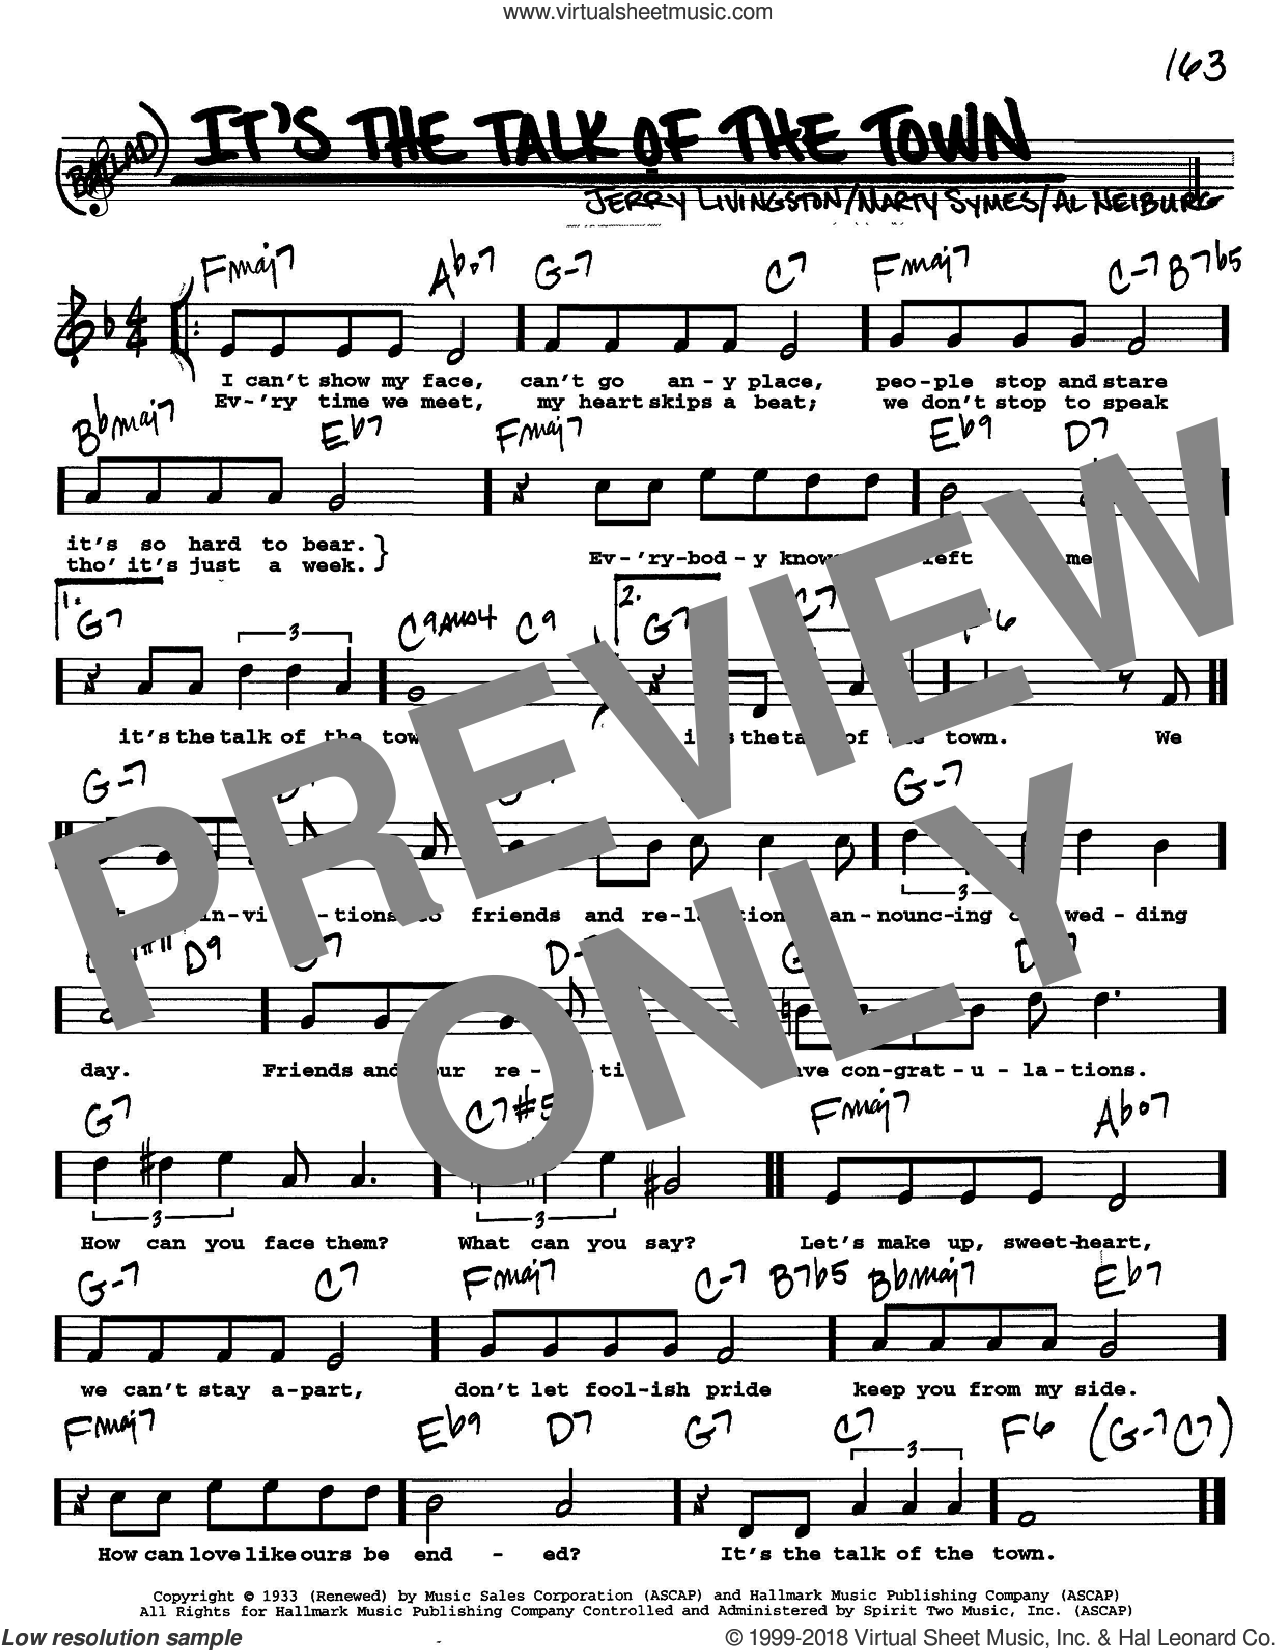 It's The Talk Of The Town sheet music for voice and other instruments (Vocal Volume 2) by Jerry Livingston and Marty Symes, intermediate voice. Score Image Preview.